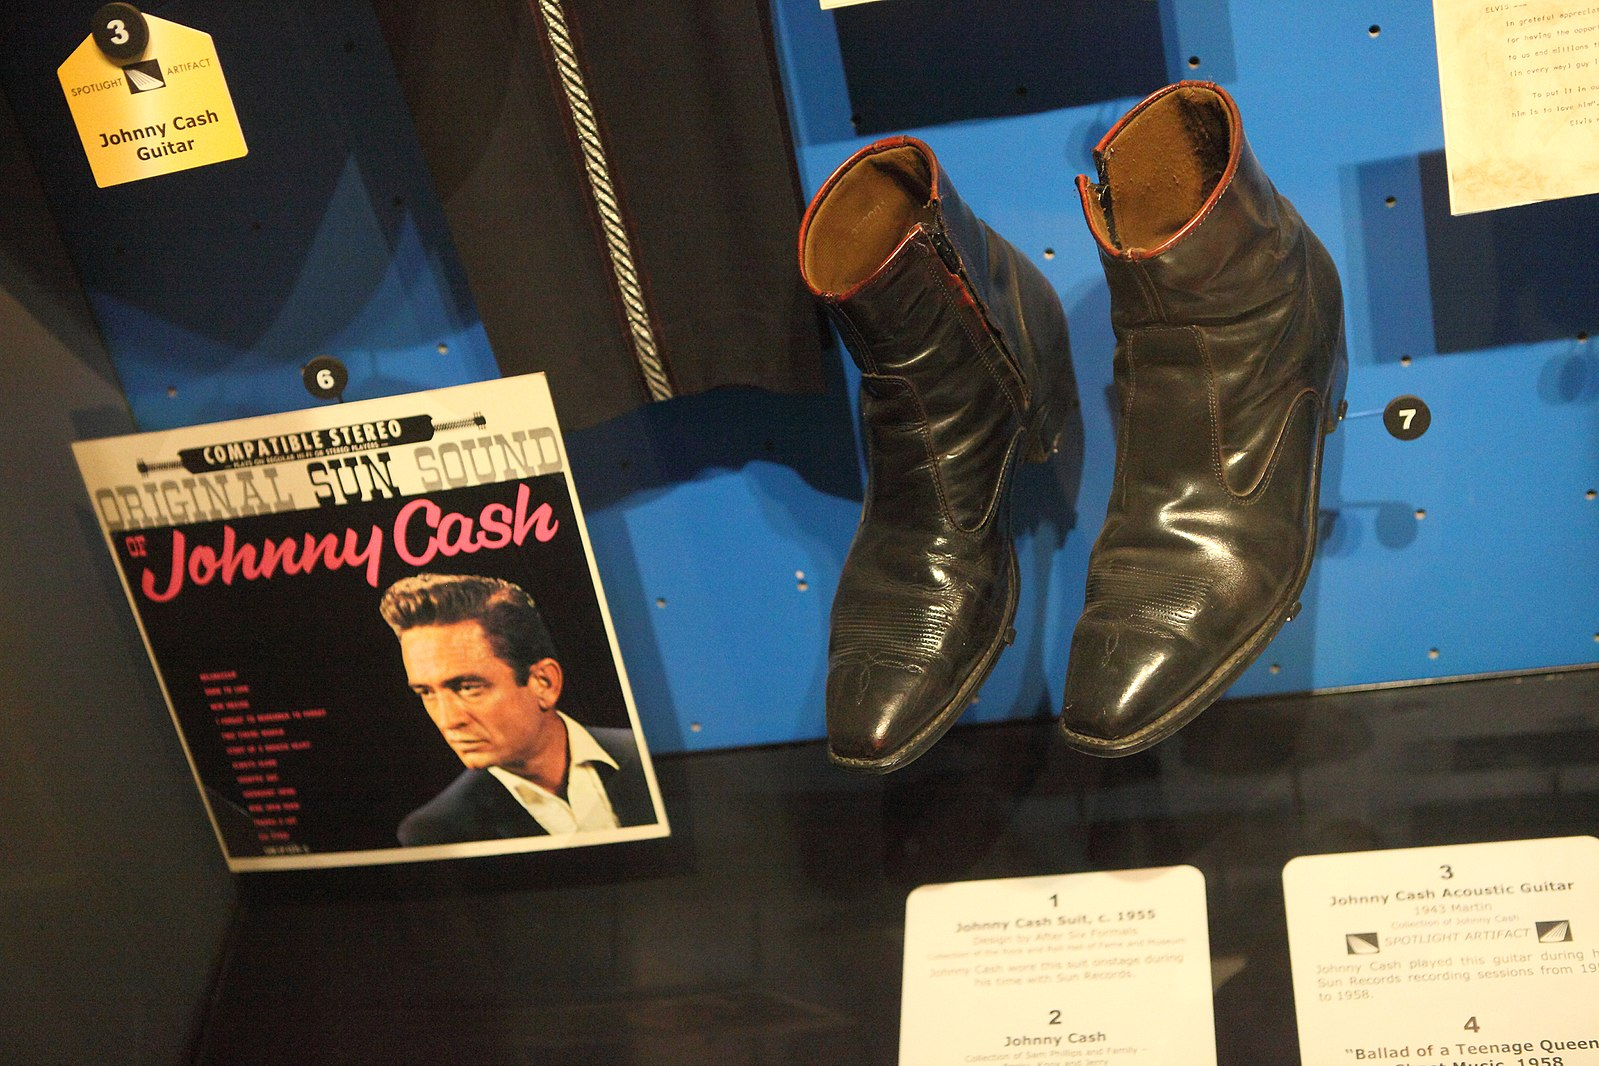 1599px-Johnny_Cash's_Boots_-_Rock_and_Roll_Hall_of_Fame_(2014-12-30_12.15.27_by_Sam_Howzit).jpg